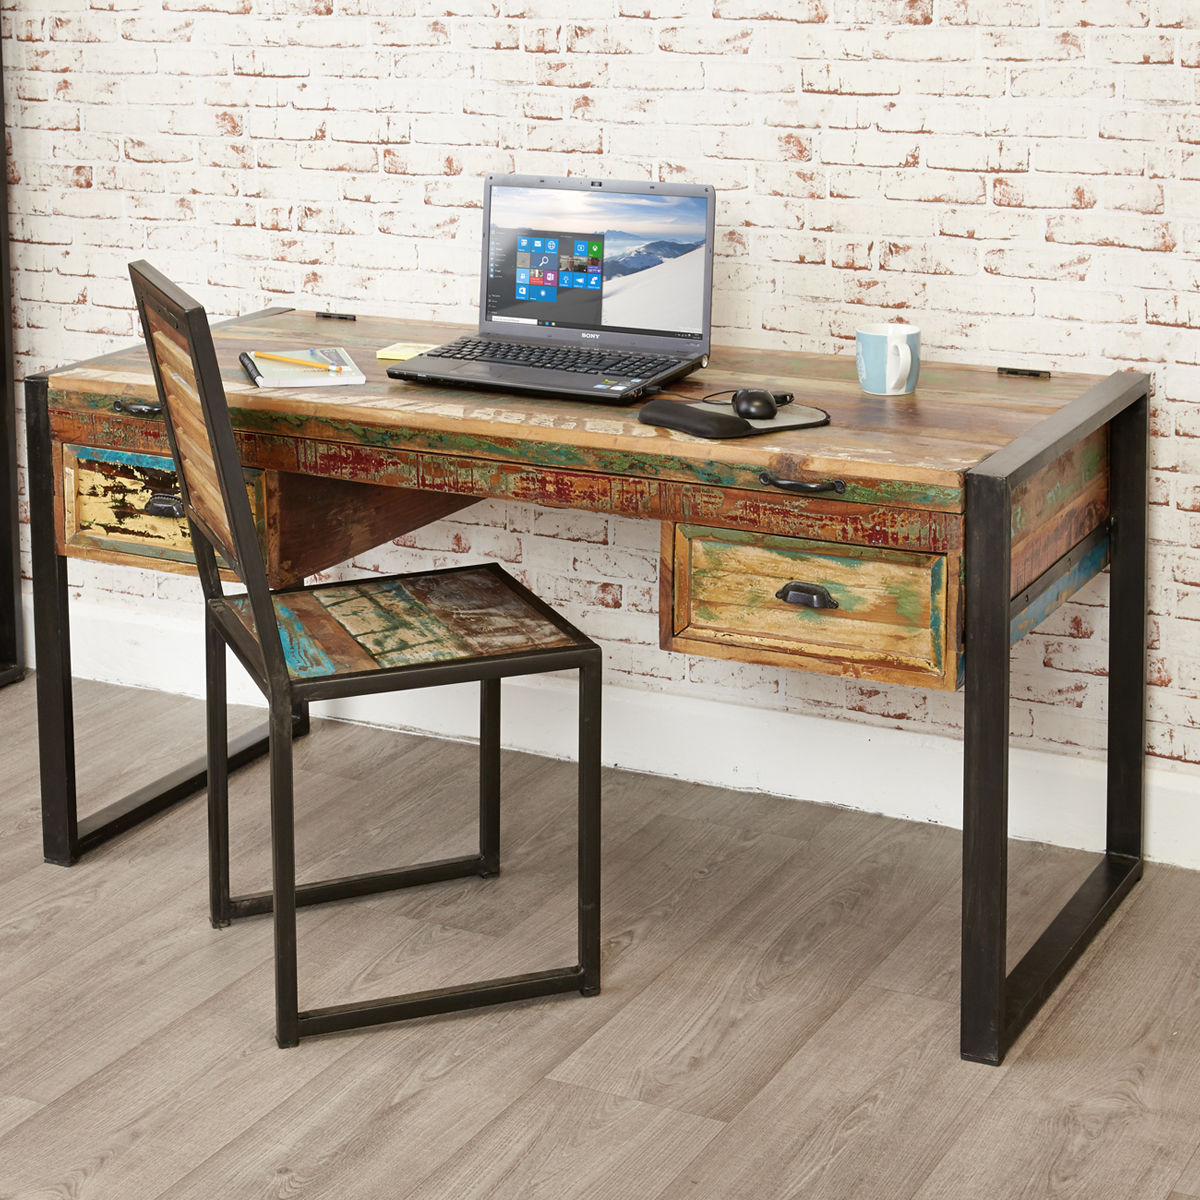 Home Office Furniture At Wooden Furniture Store: Urban Chic Laptop Desk / Dressing Table Was £480.00 Now £